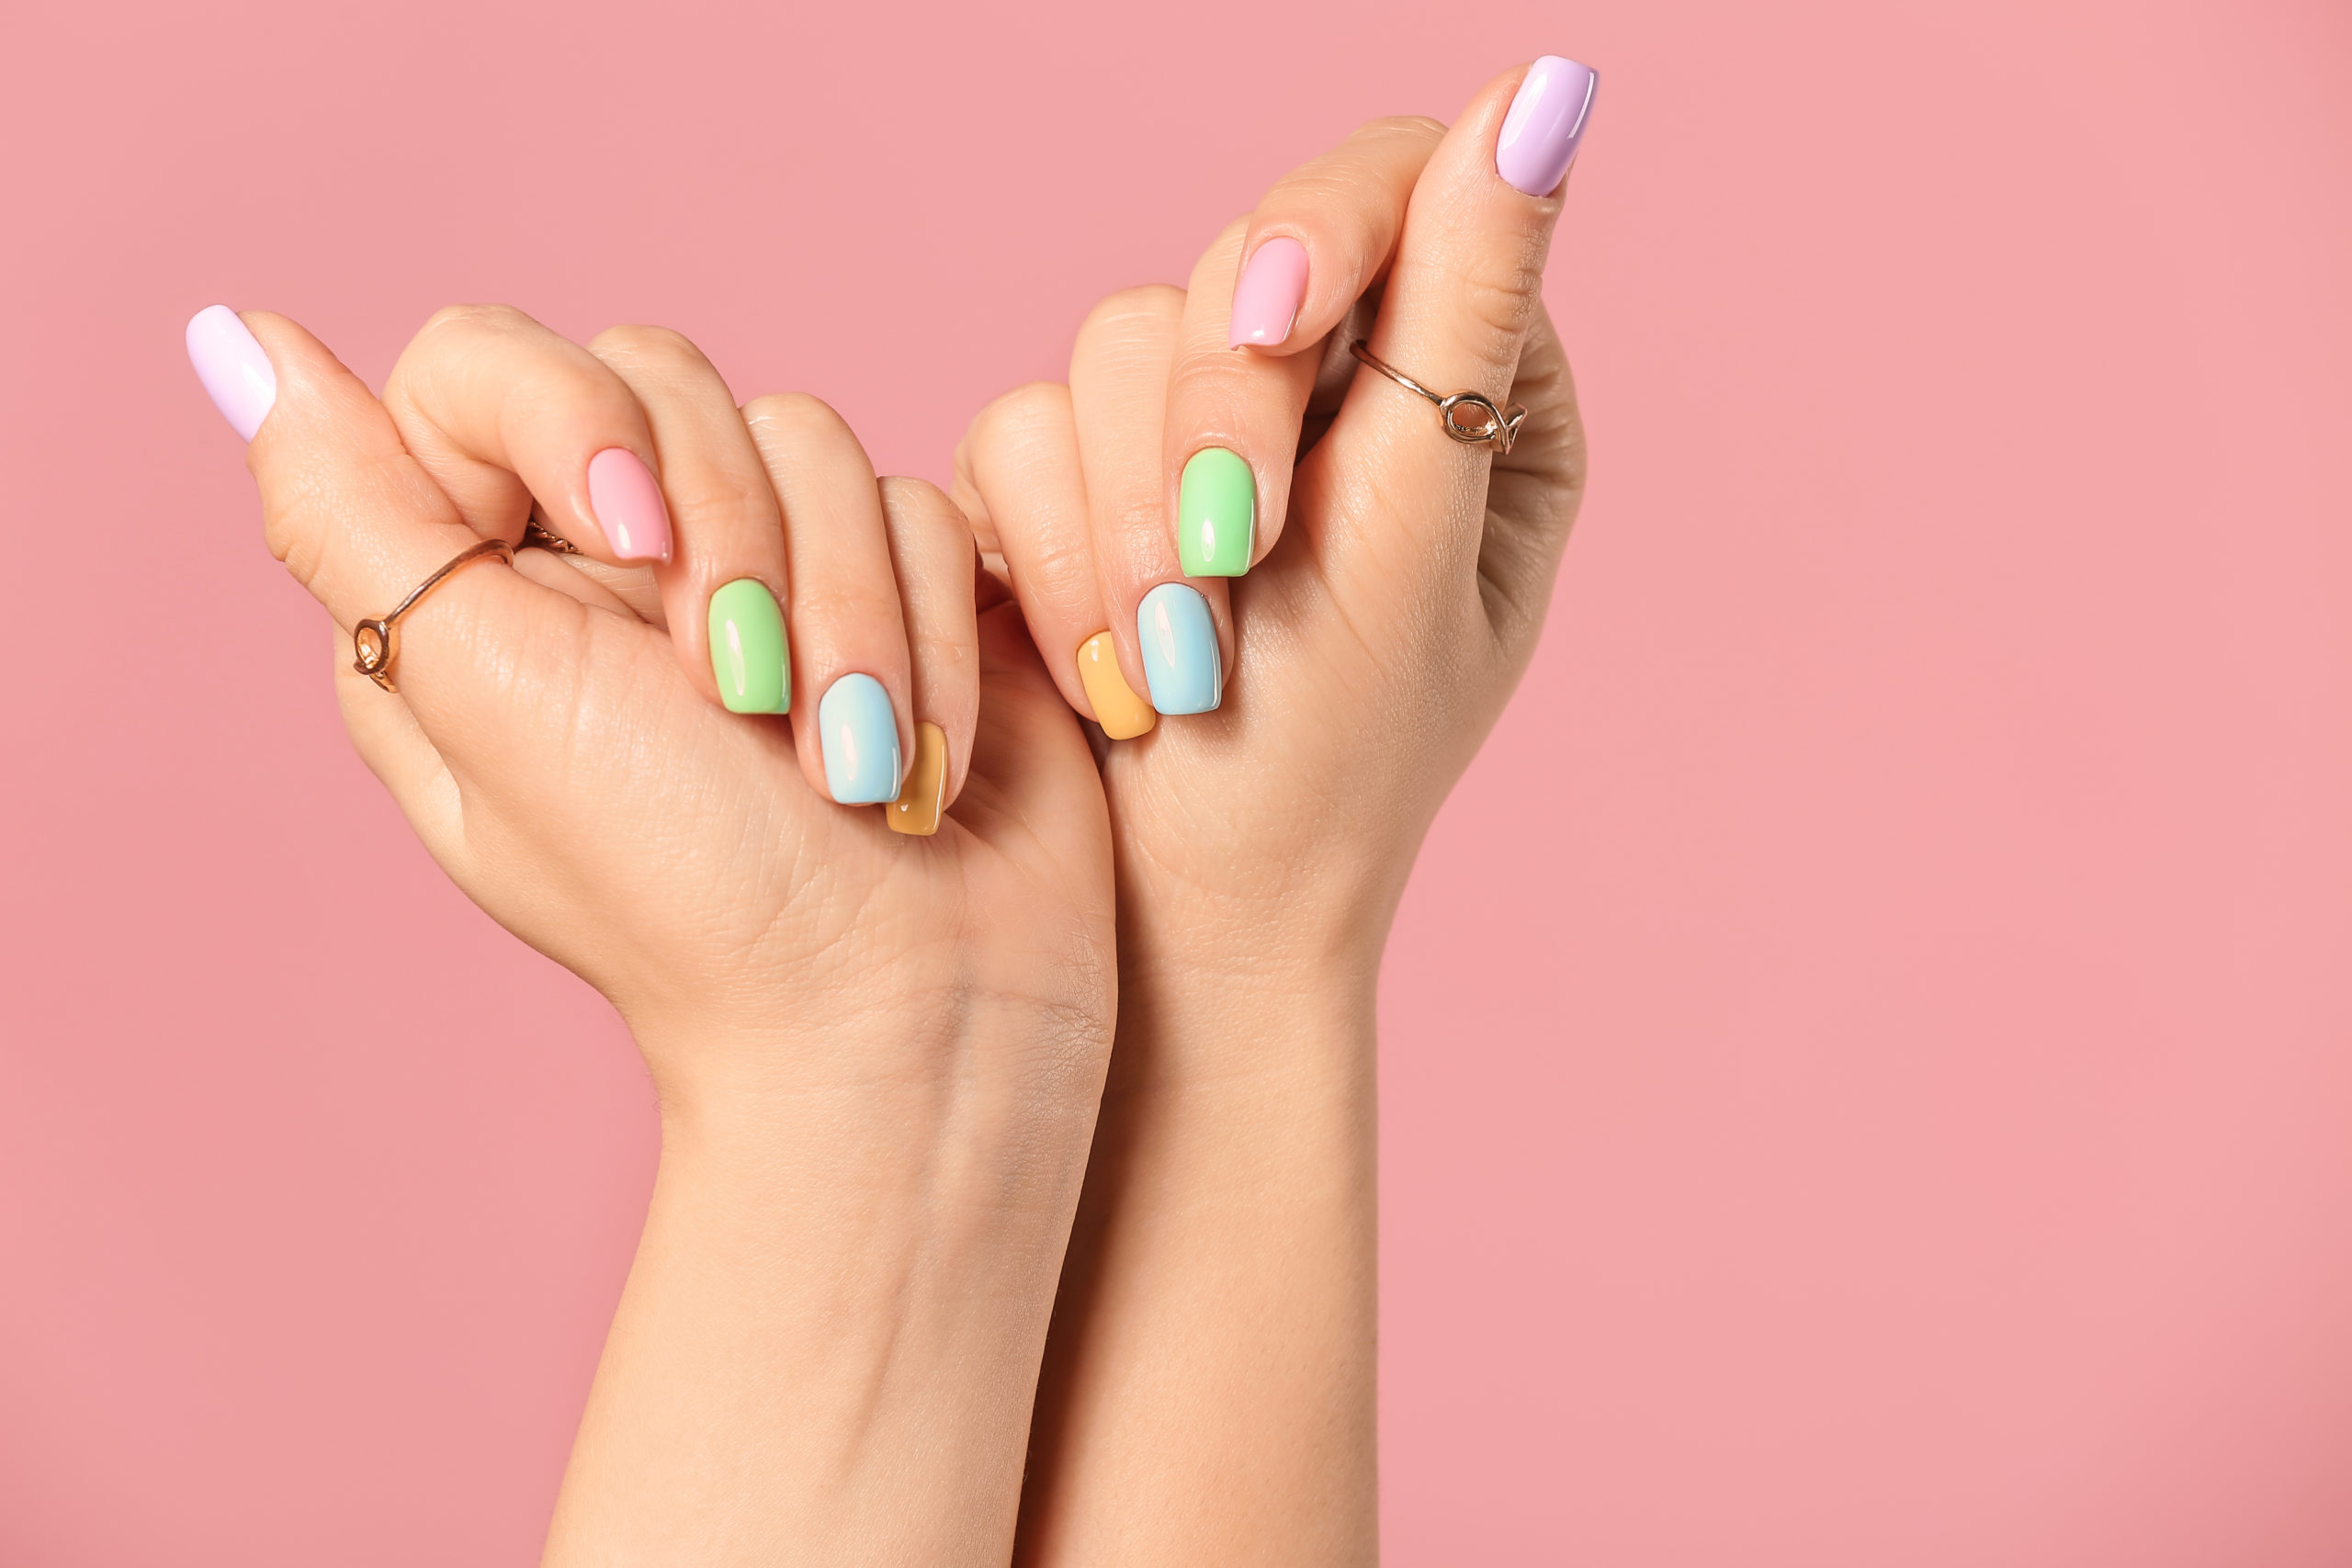 5 Trendy Nail Art Ideas To Try This Spring 2021